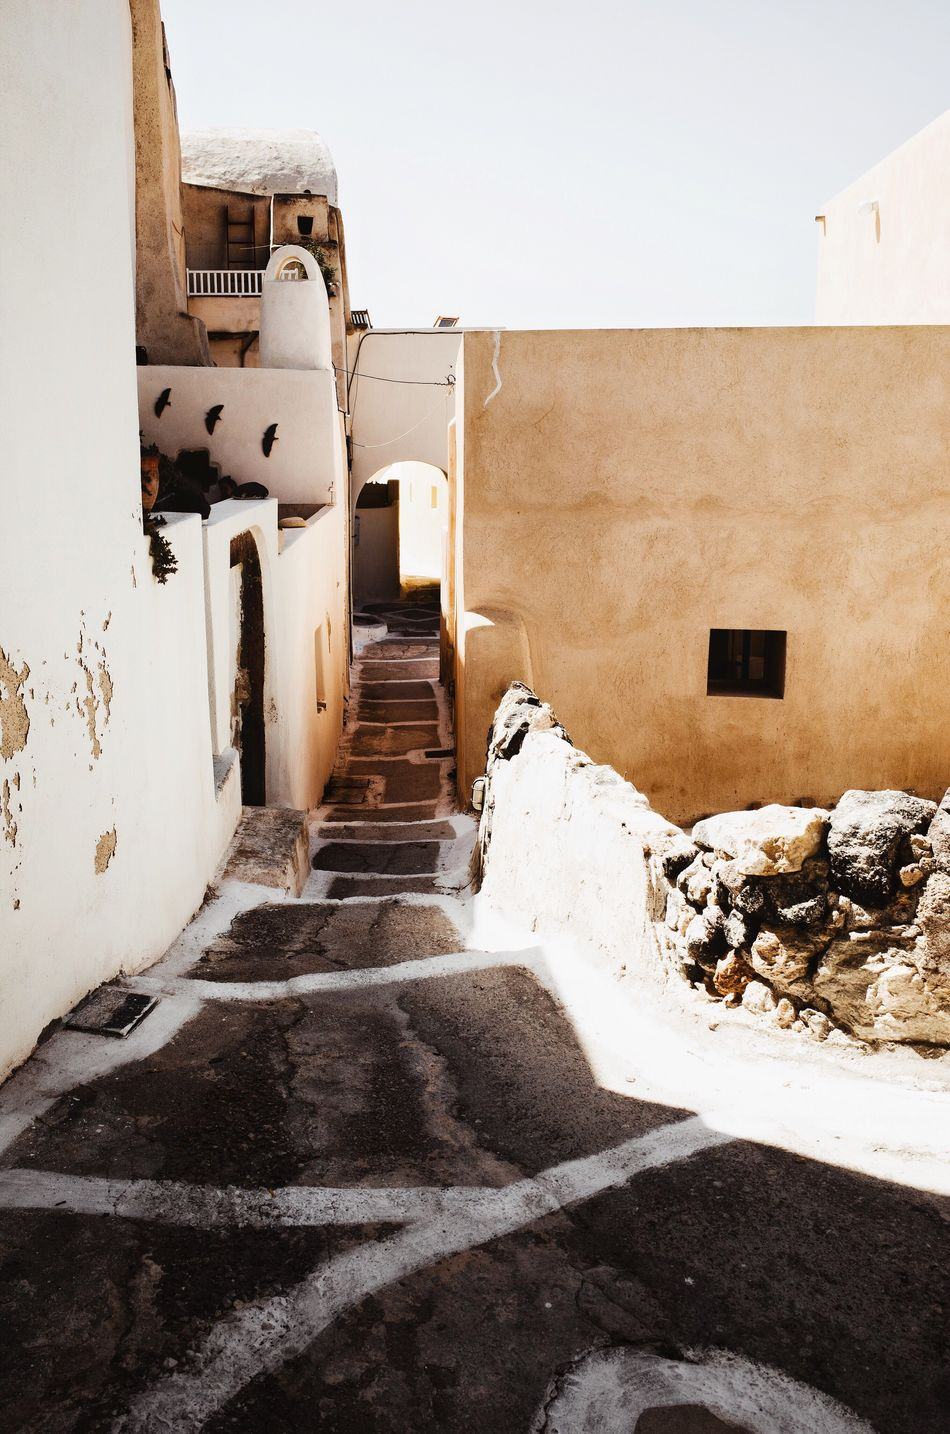 Architecture Built Structure Building Exterior Outdoors Day No People Whitewashed Nature Sky Santorini, Greece Santorini Greece Greece Alley